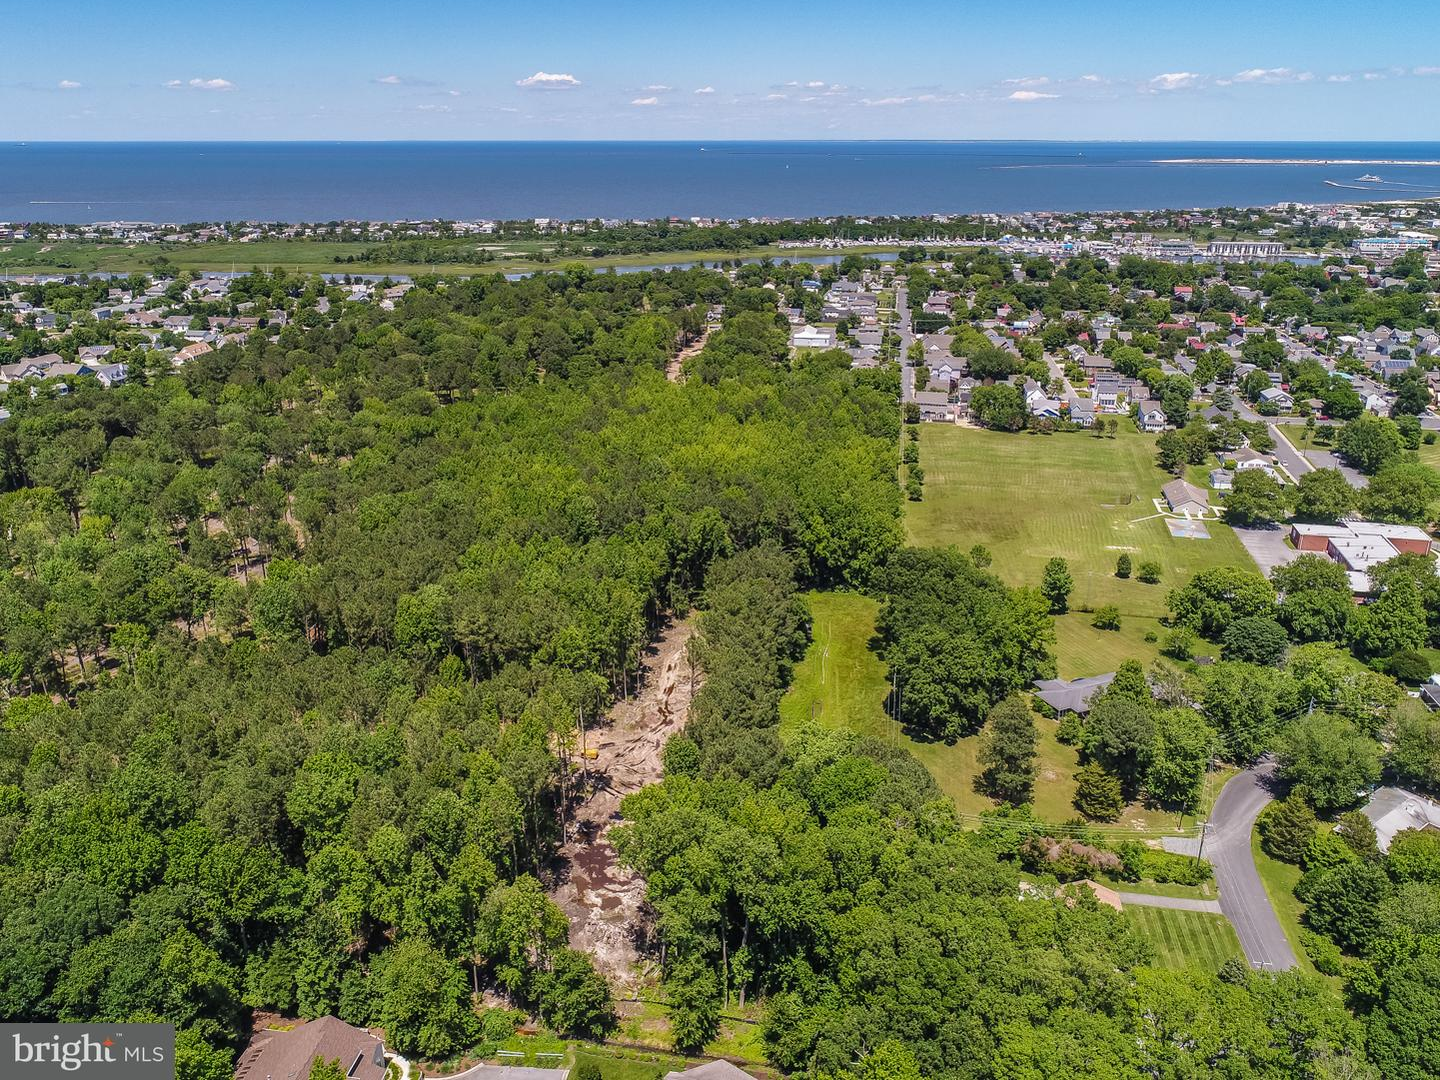 1002047892-300471115579-2018-08-04-07-32-08 Lot 20 Virden Way | Lewes, DE Real Estate For Sale | MLS# 1002047892  - Rehoboth Beach Real Estate - Bryce Lingo and Shaun Tull REALTORS, Rehoboth Beach, Delaware